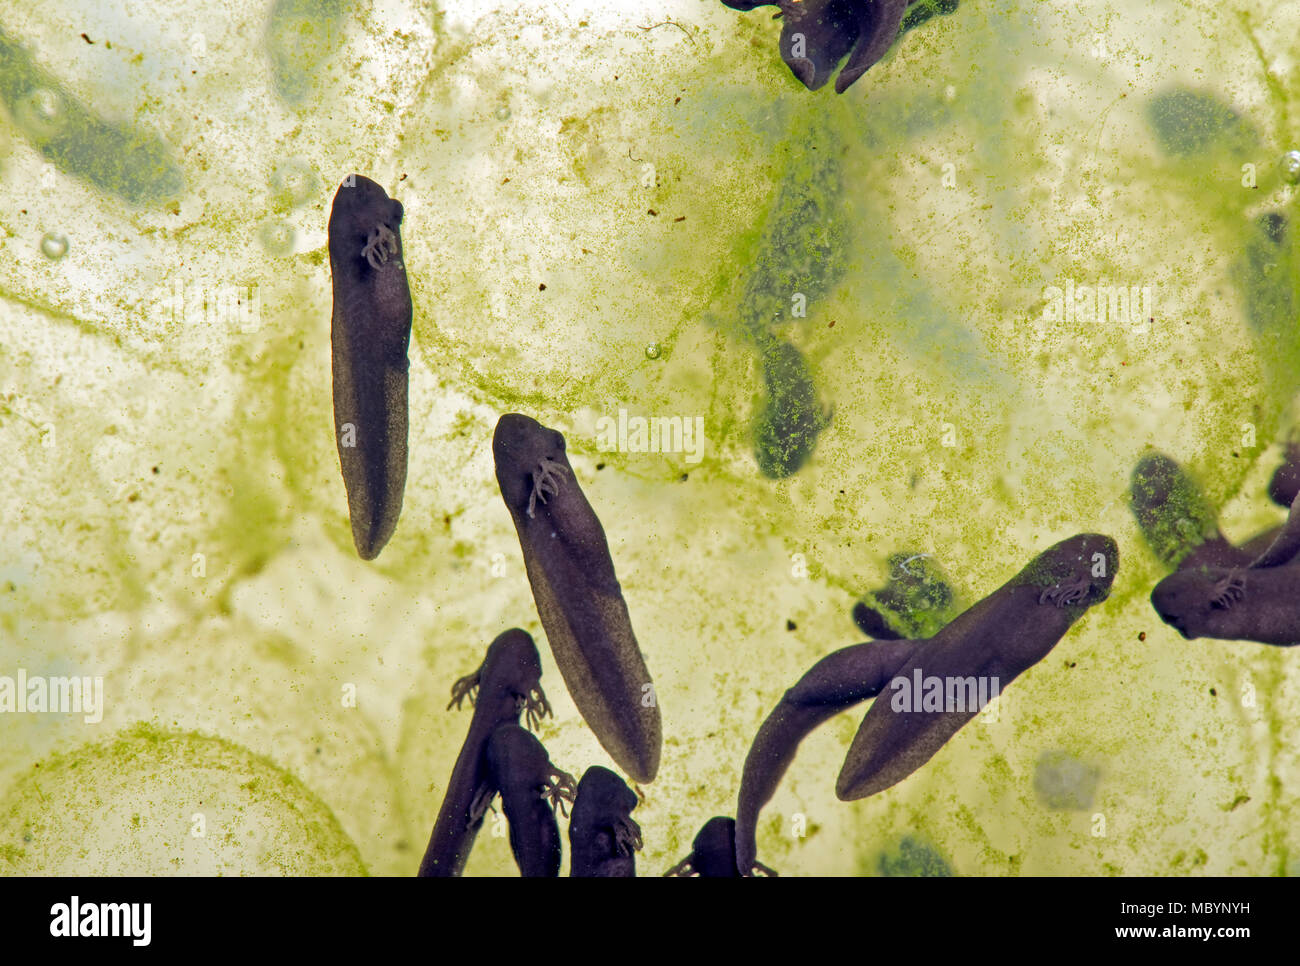 European common frog, Rana temporaria, frogspawn with hatched and hatching tadpoles, April - Stock Image